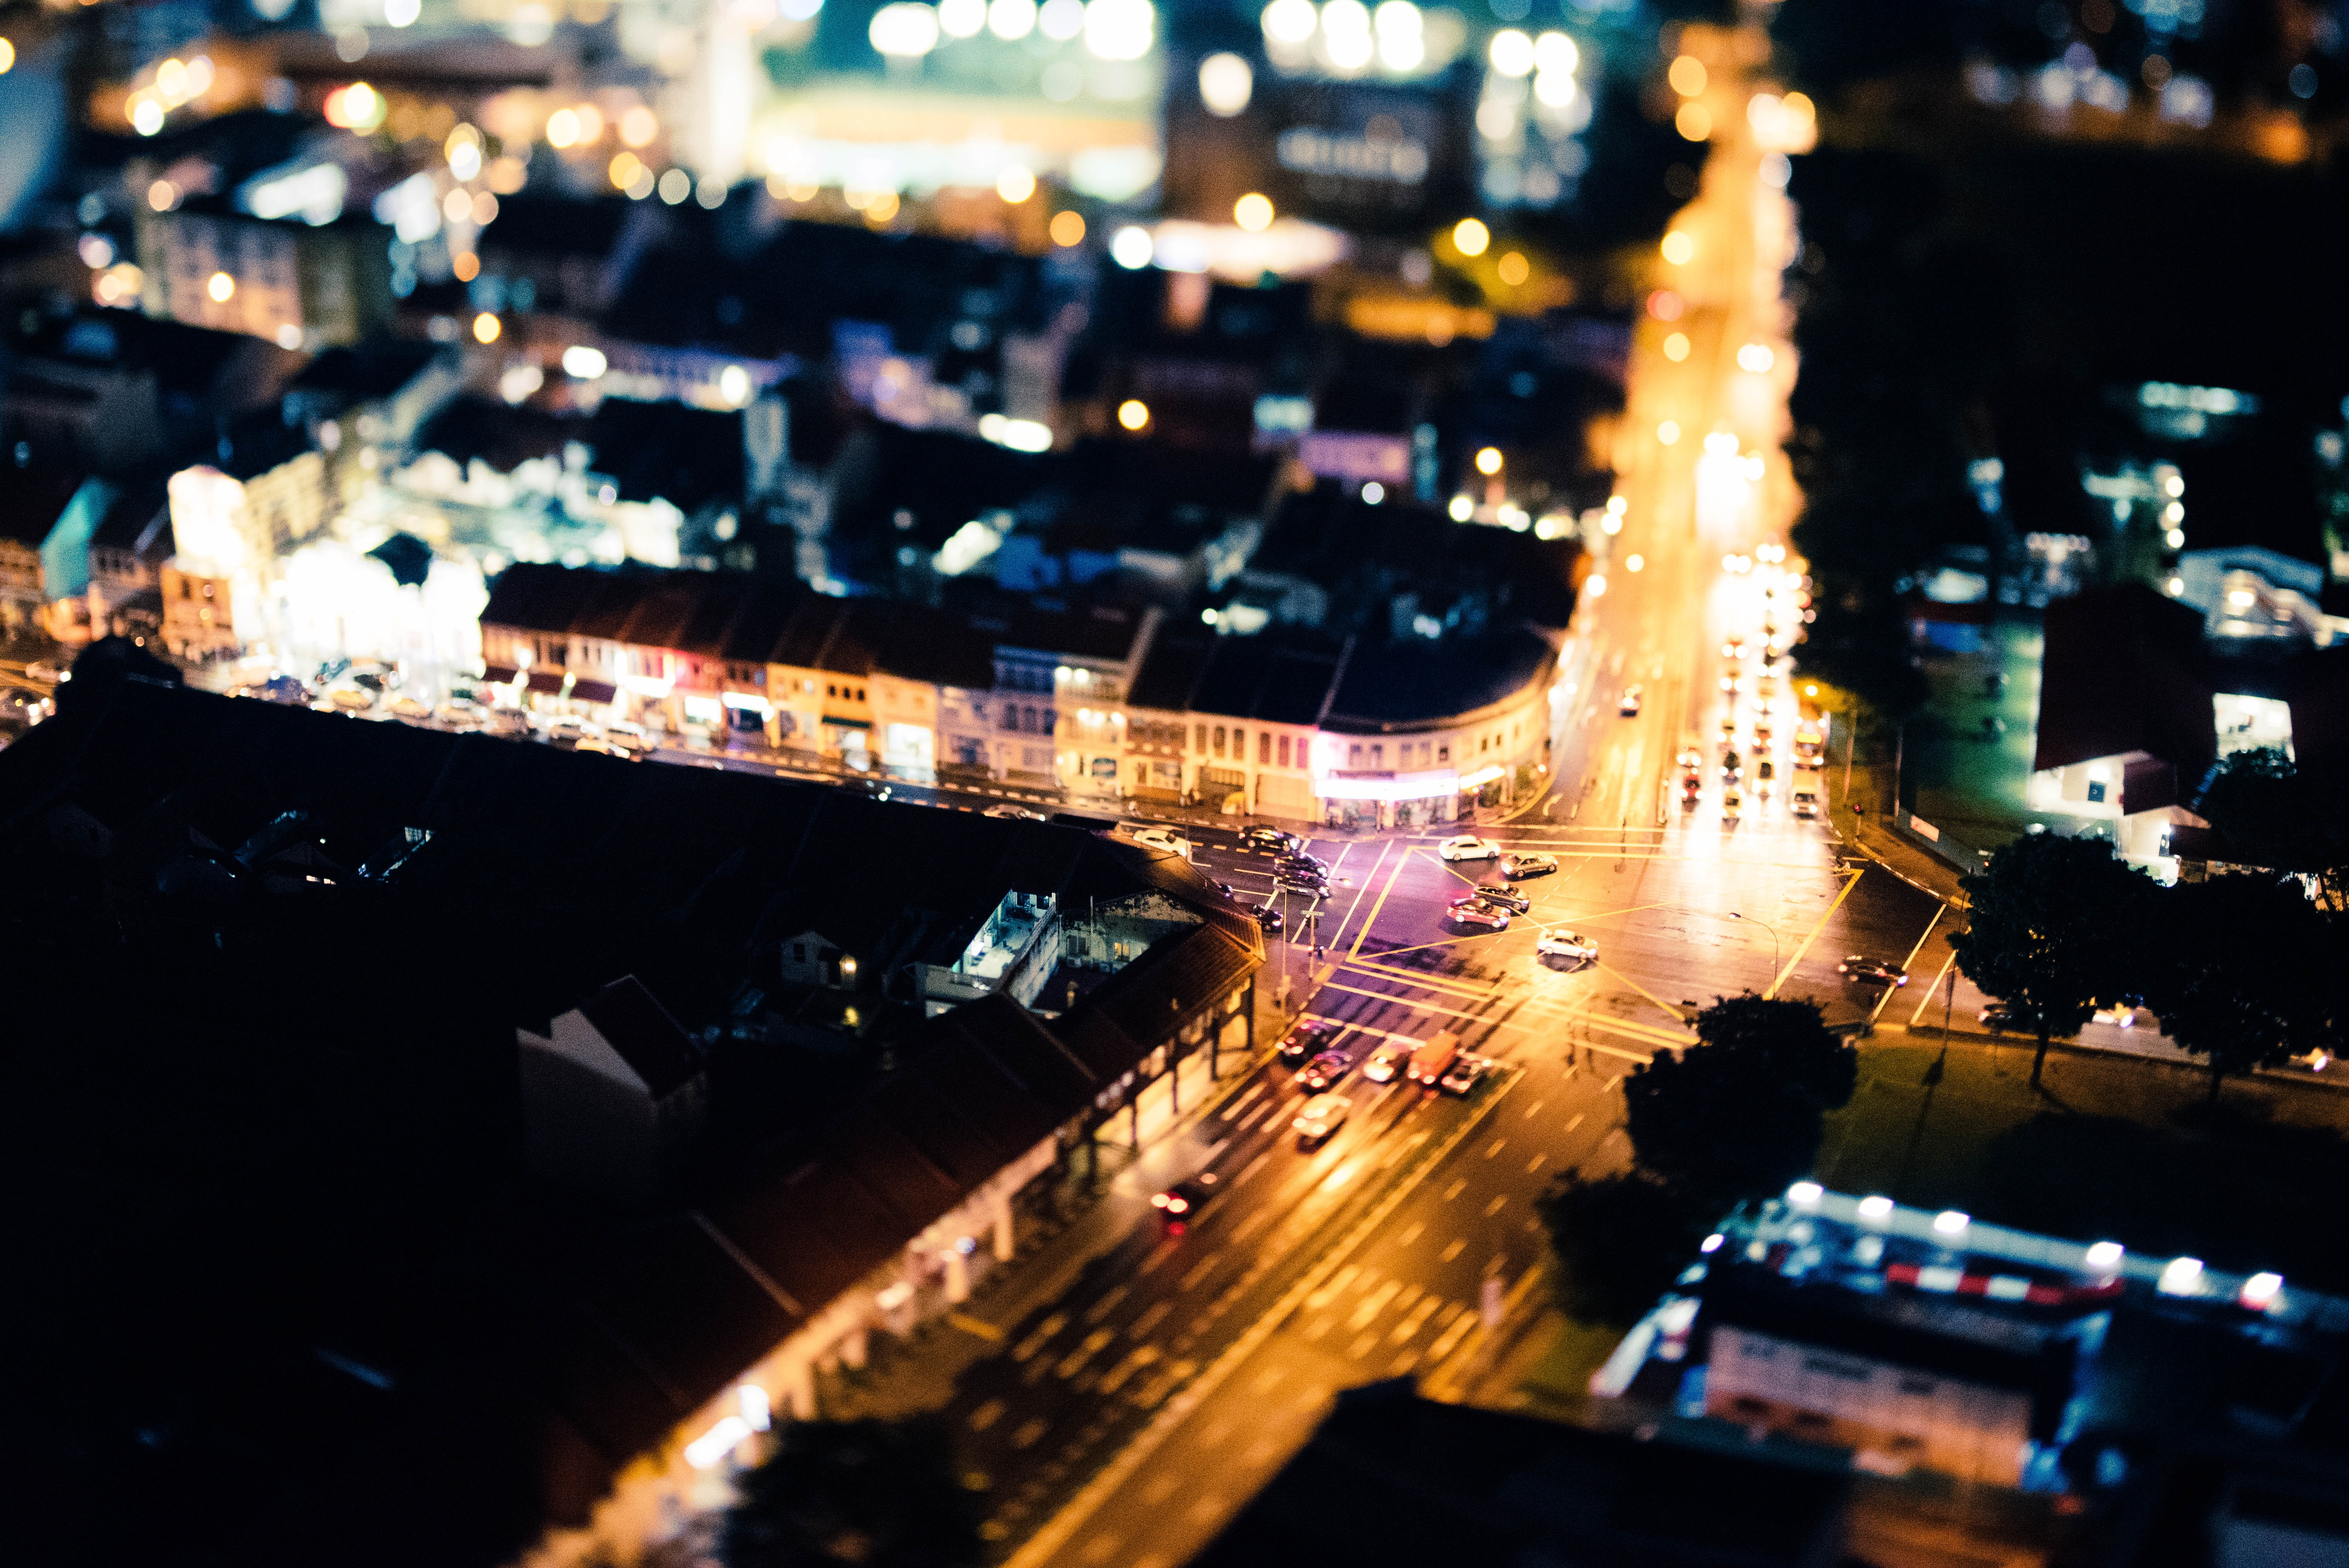 aerial photography of city buildings at night time